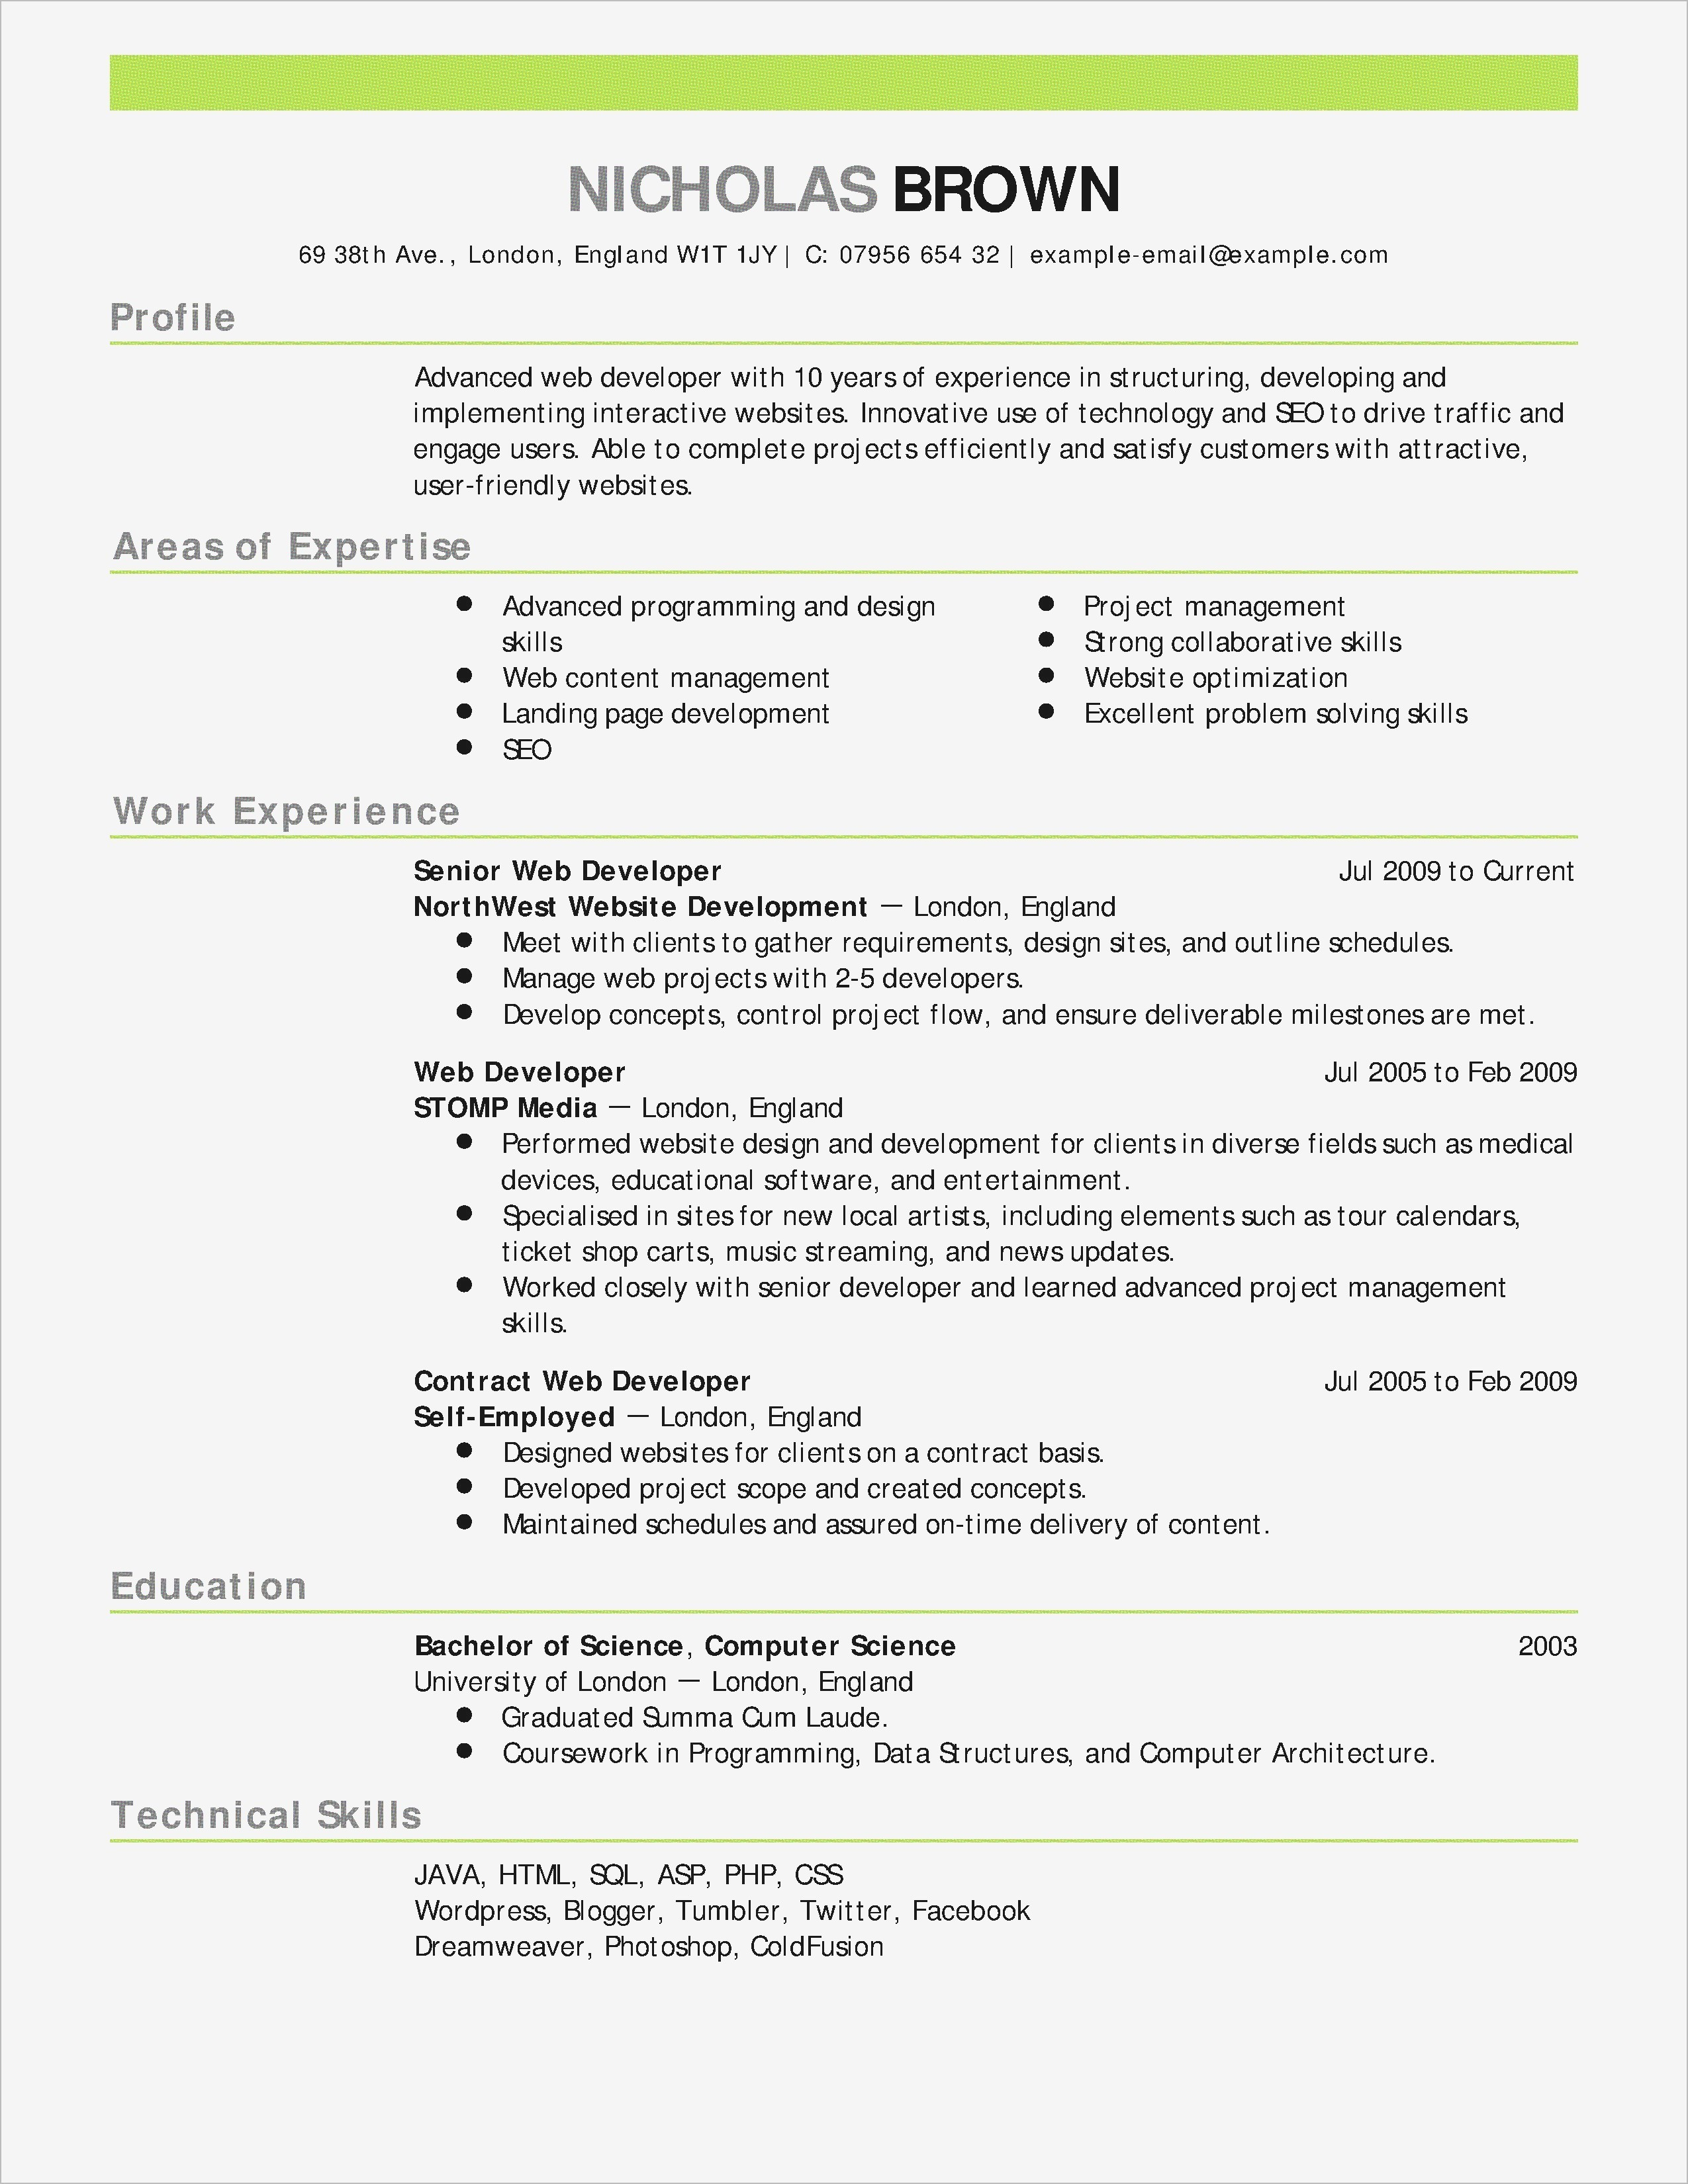 Fox School Of Business Resume Template - 15 Fun Resume Templates